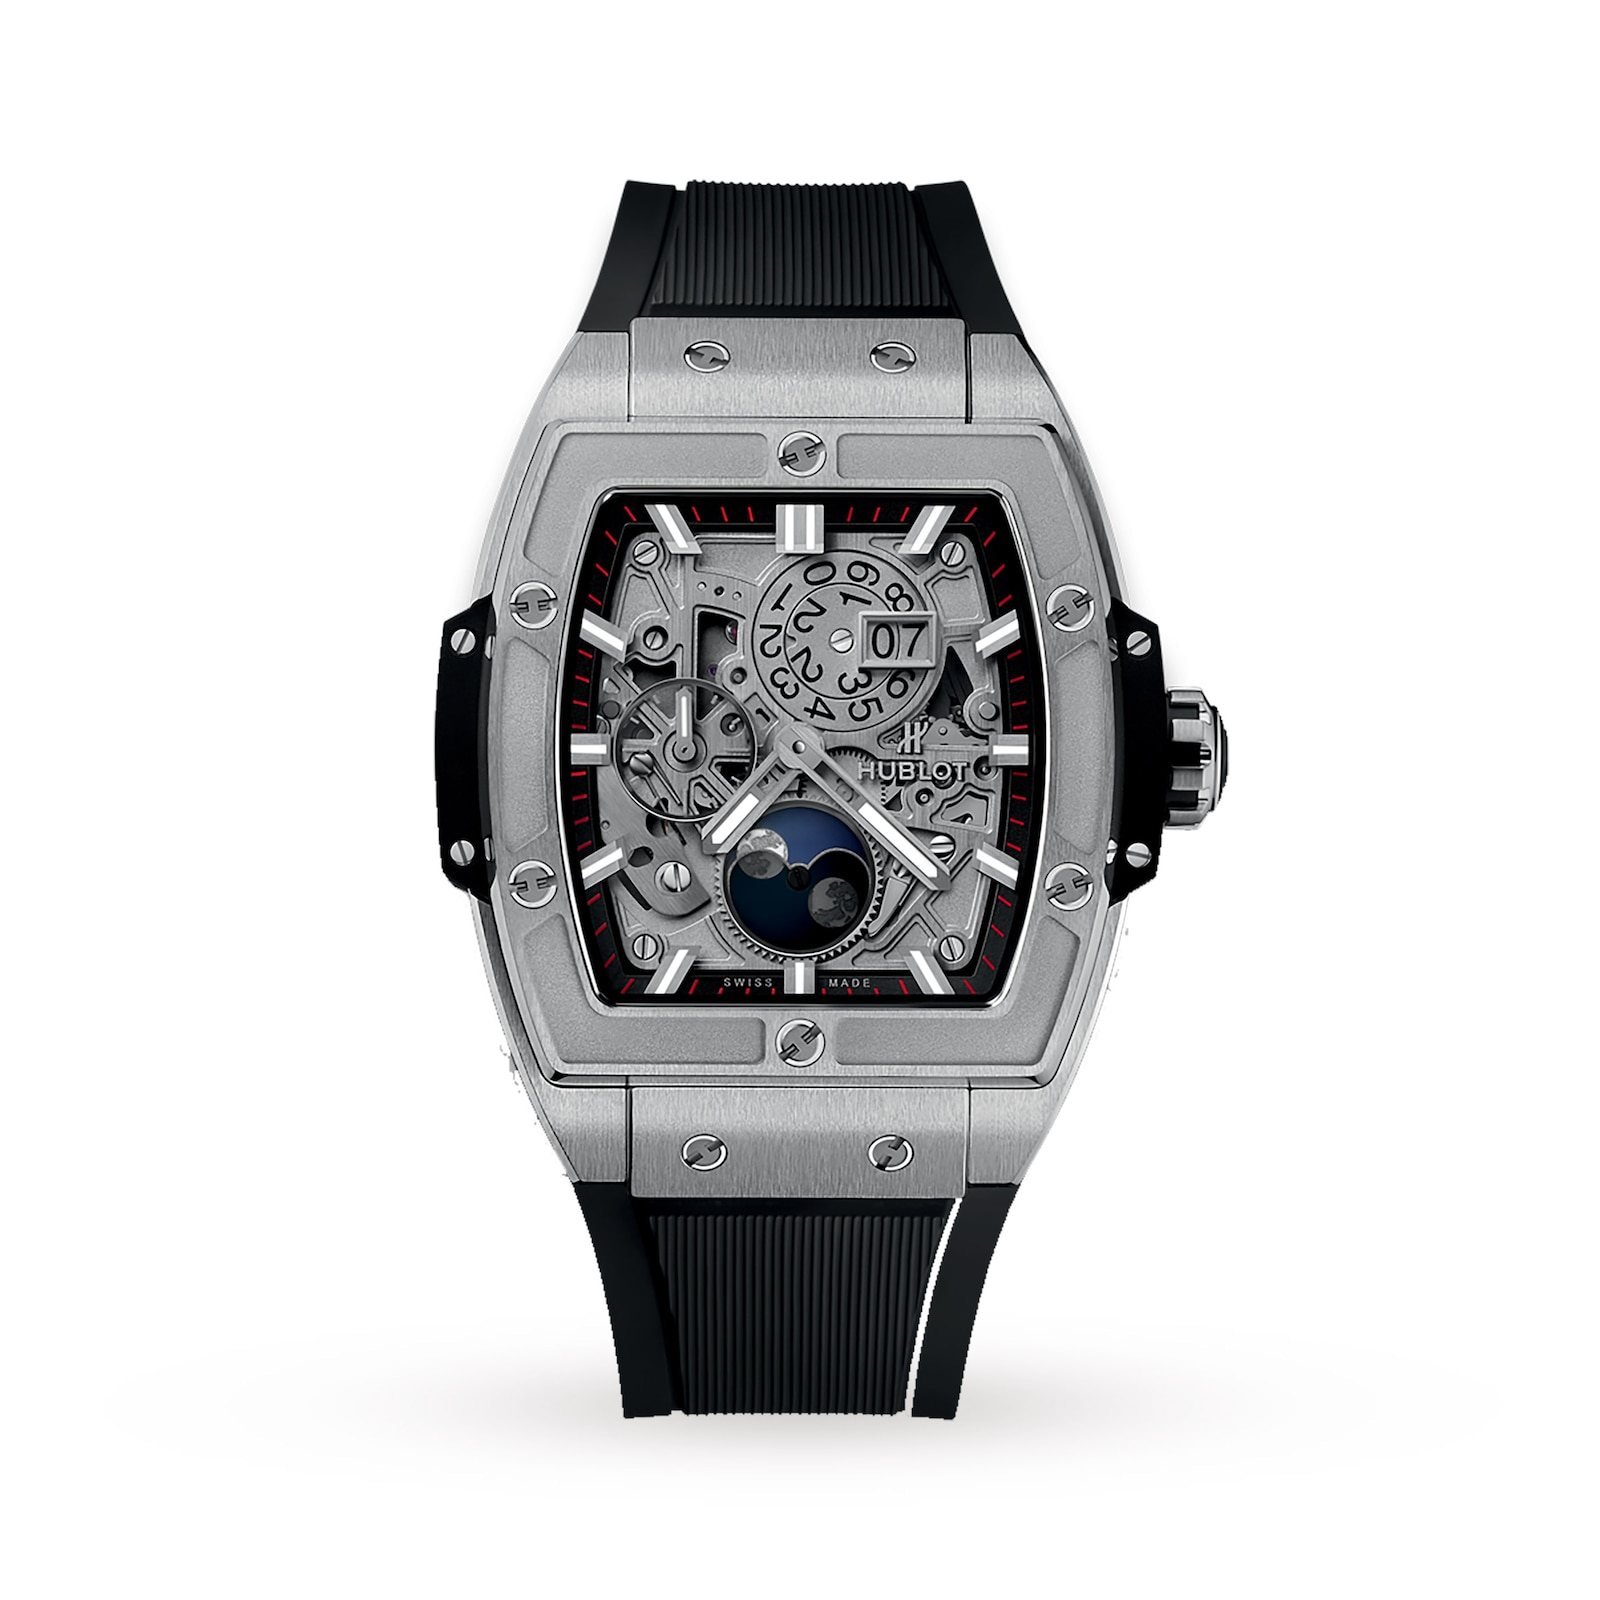 Hublot Hublot Spirit of Big Bang Moonphase Titanium 42mm Mens Watch